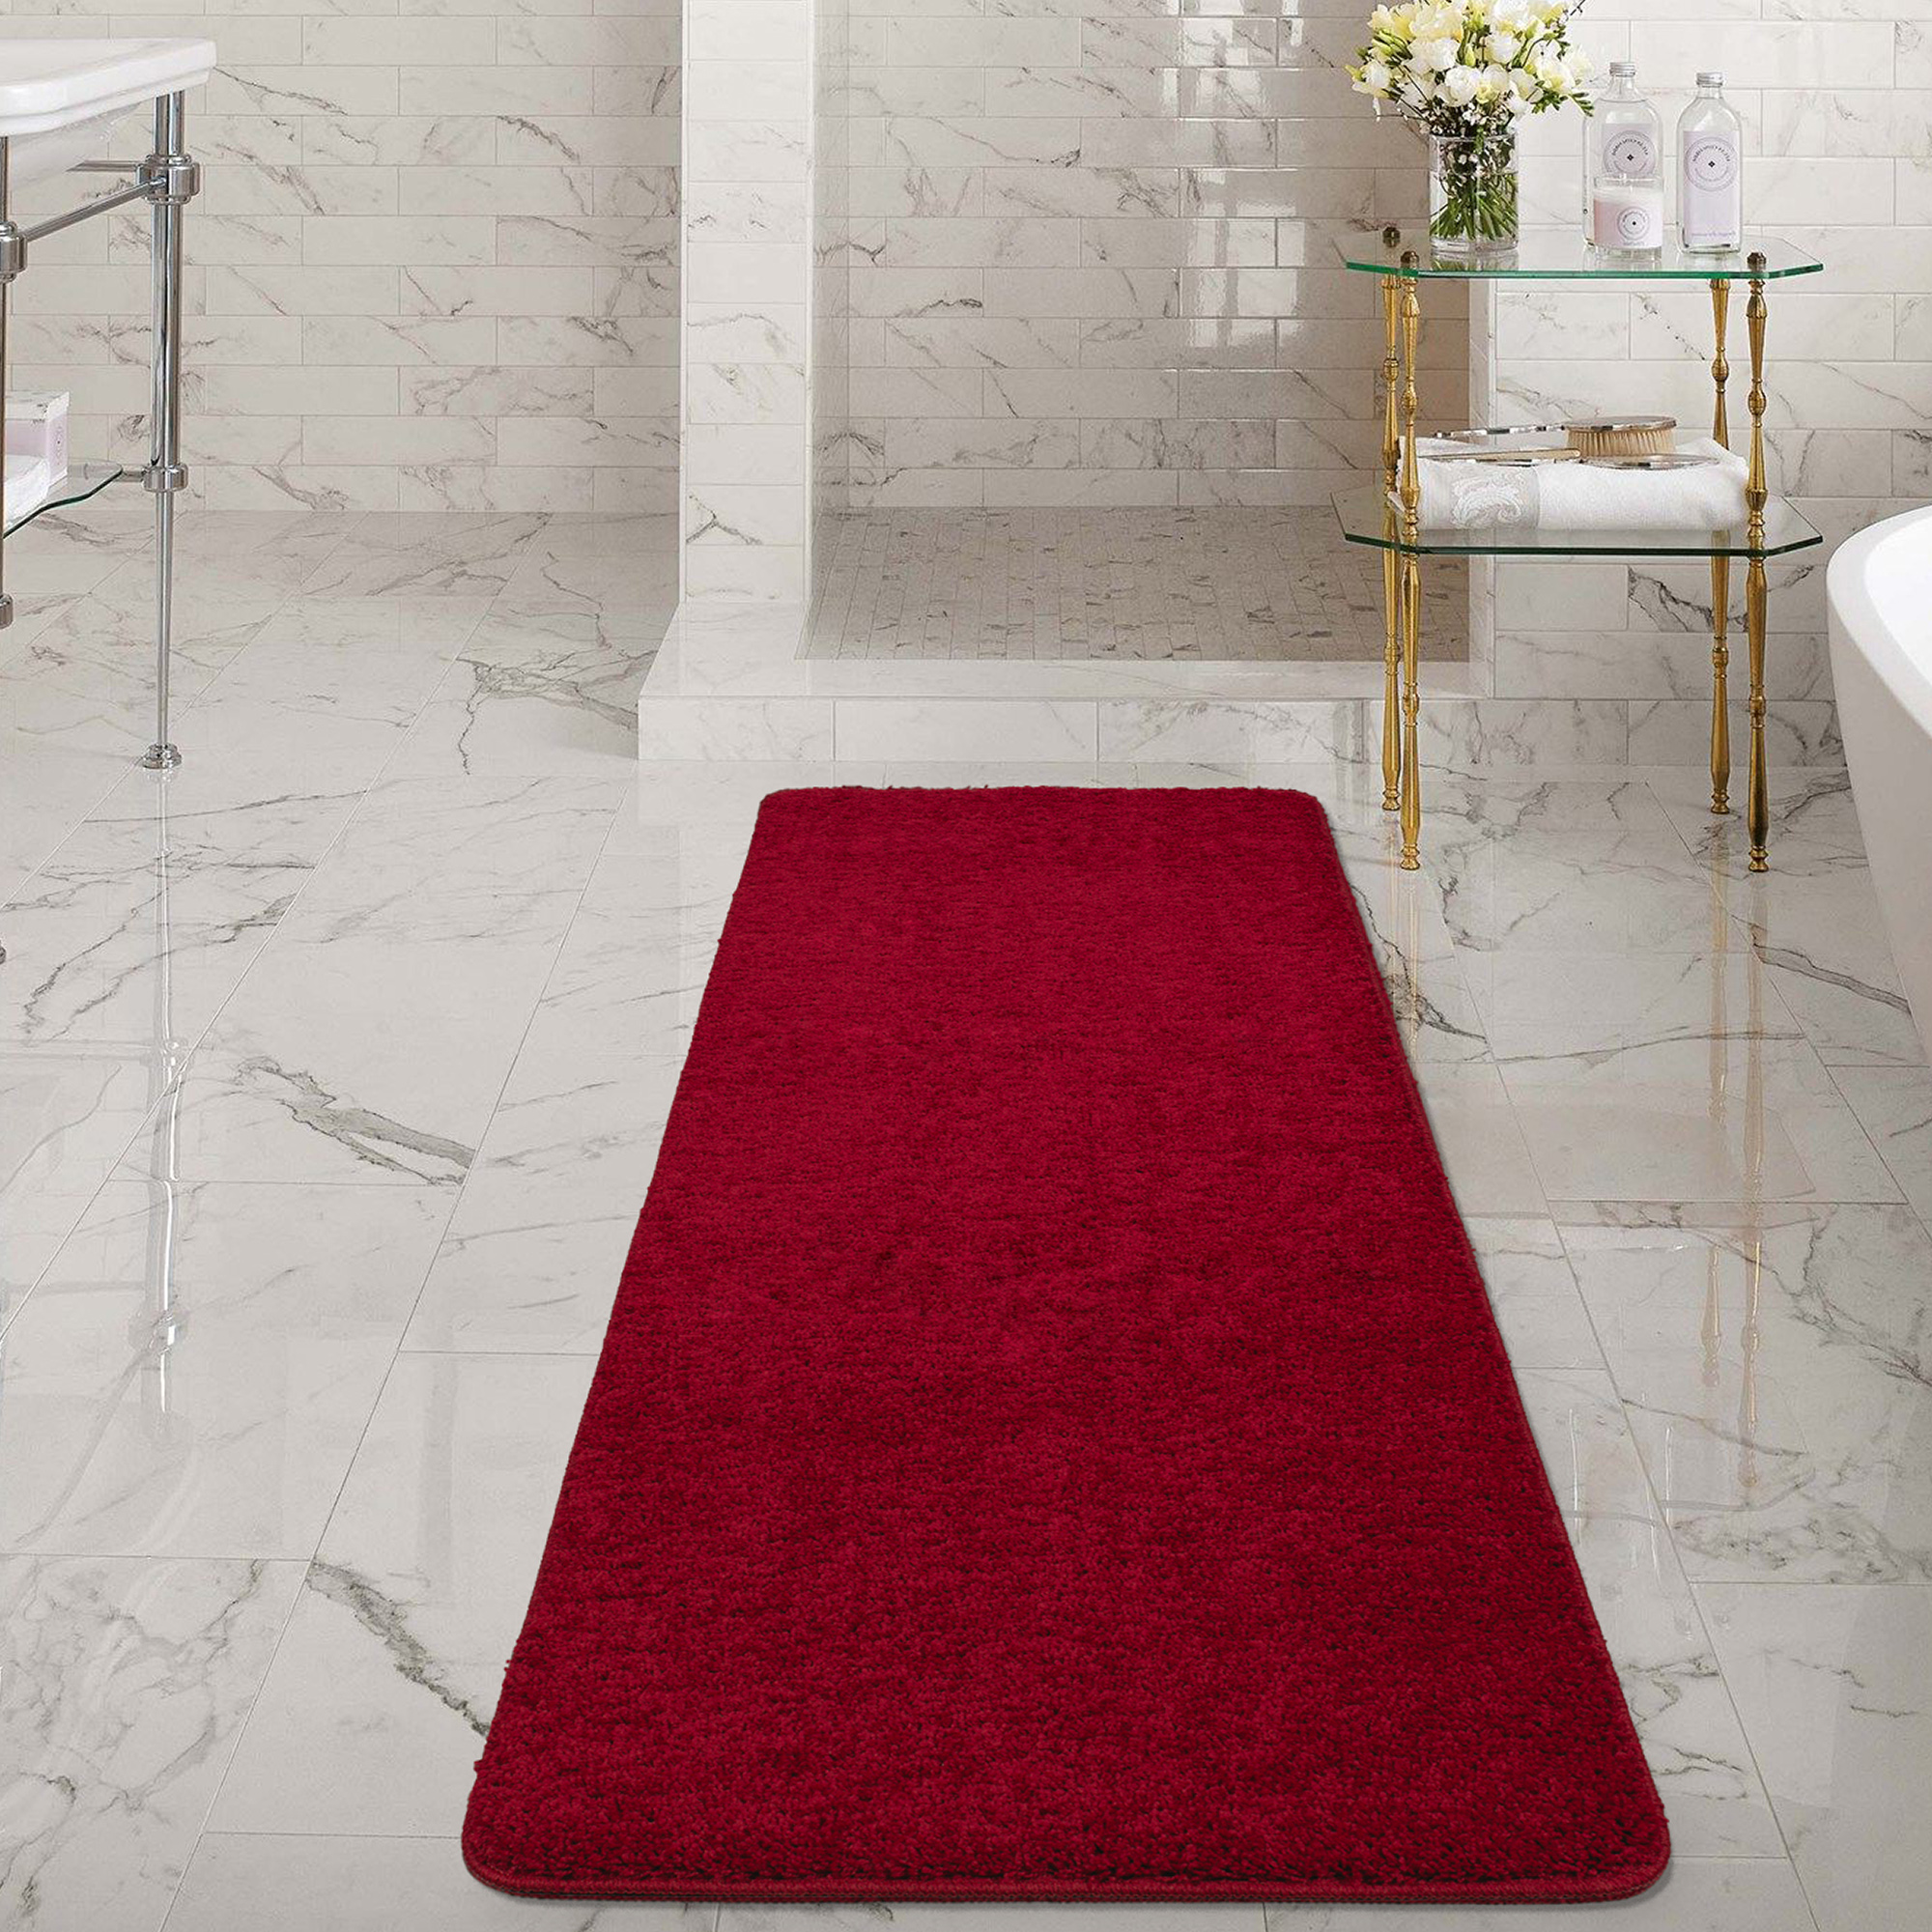 Product Image Ottomanson Luxury NonSlip Rubber Backing Solid Shag Area Rugs And Runners For Kitchen